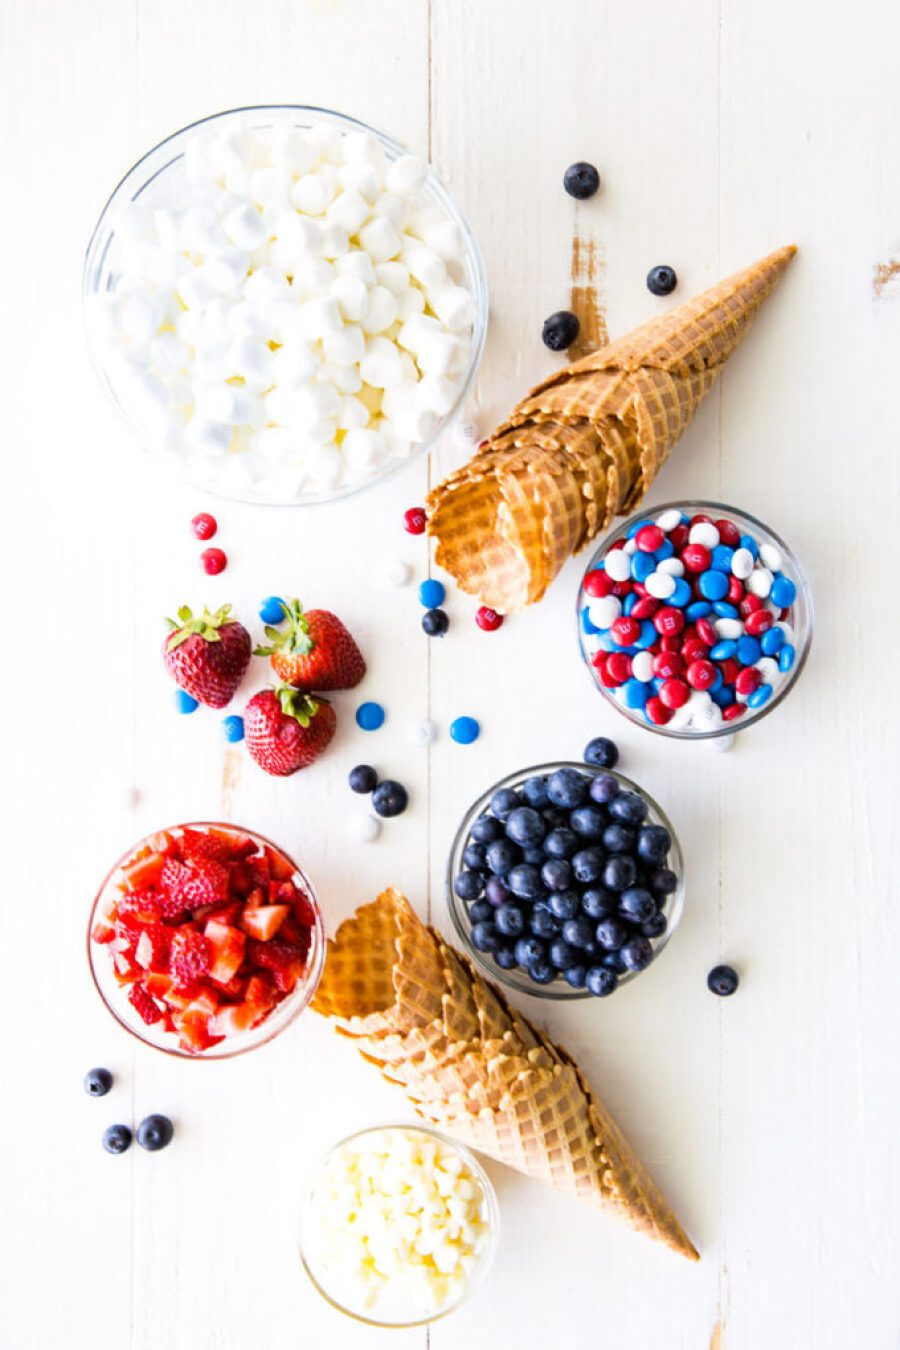 Campfire cones, waffle cones filled with marshmallows, fruit, and chocolate, and cooked in a campfire or oven.